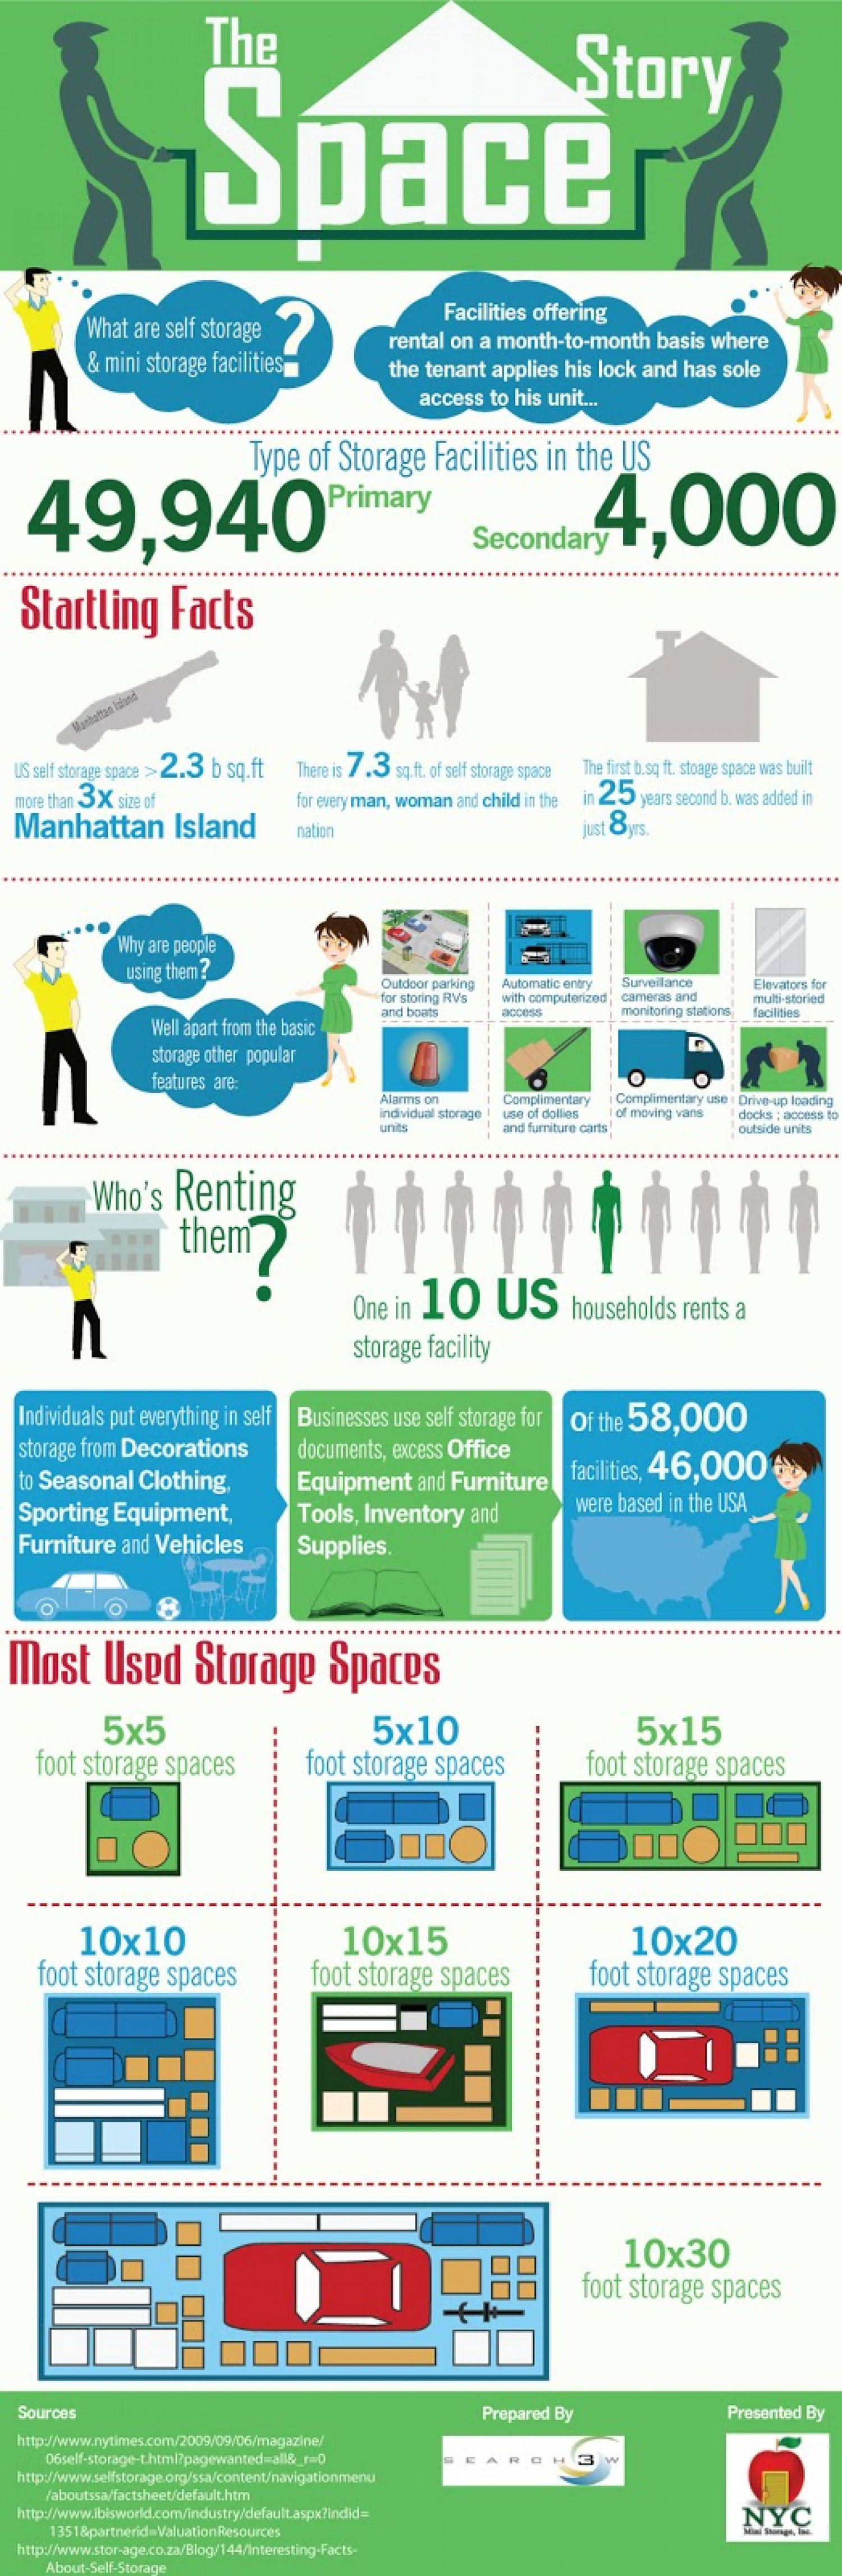 "Infographic on ""The Space Story"" around Storage Industry in the US. Infographic"